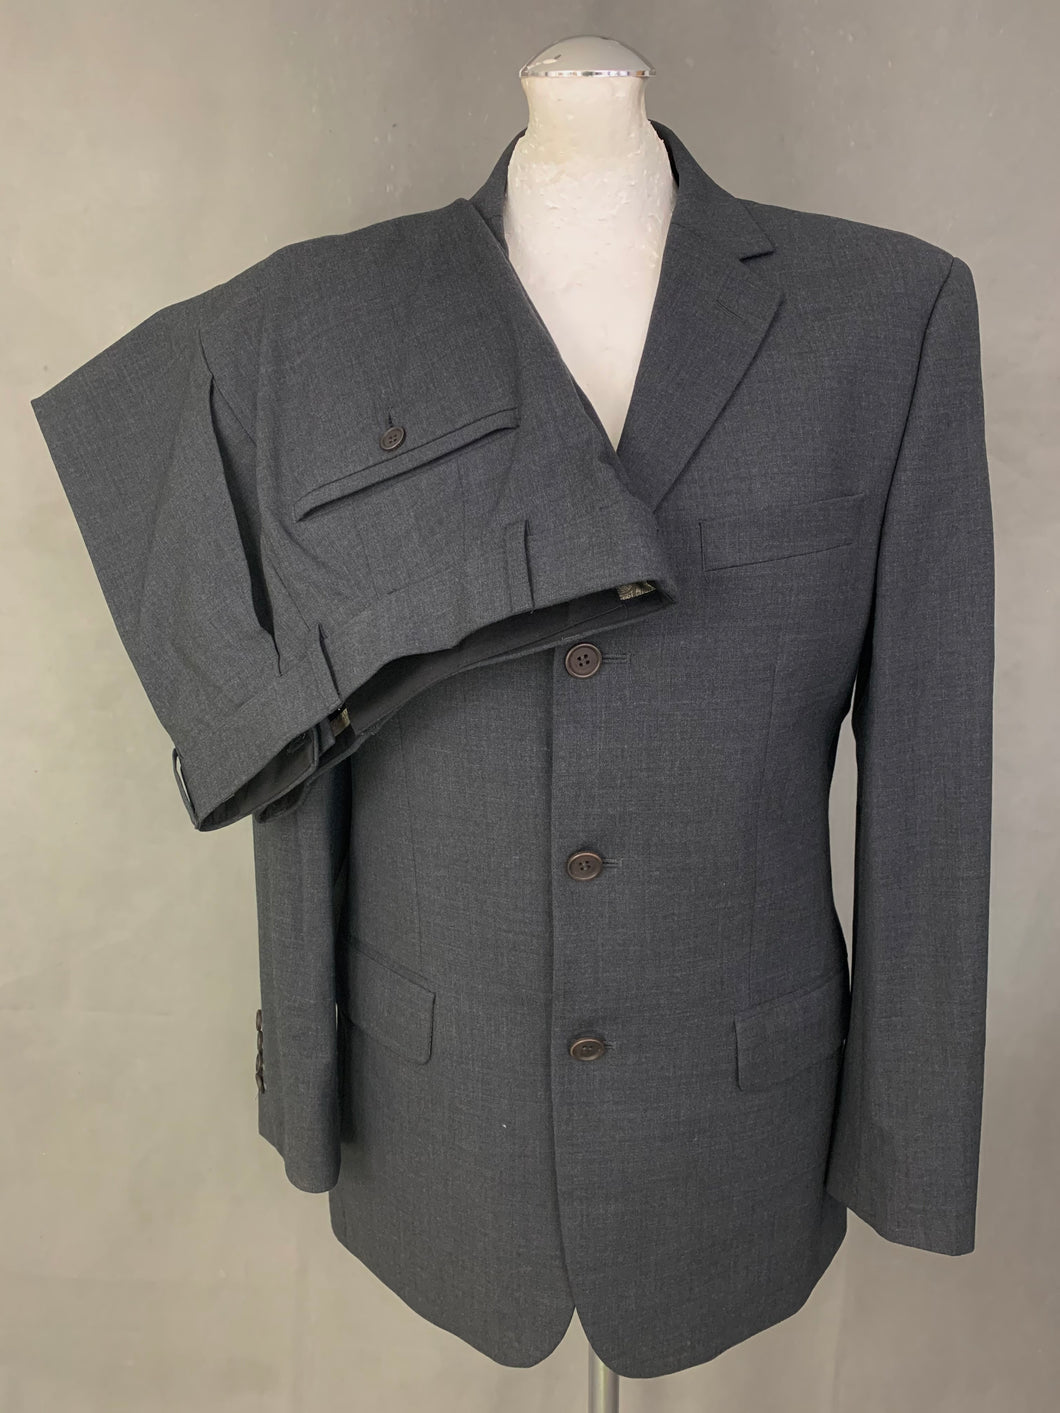 TED BAKER Grey  2 PIECE SUIT Size 38R - 38